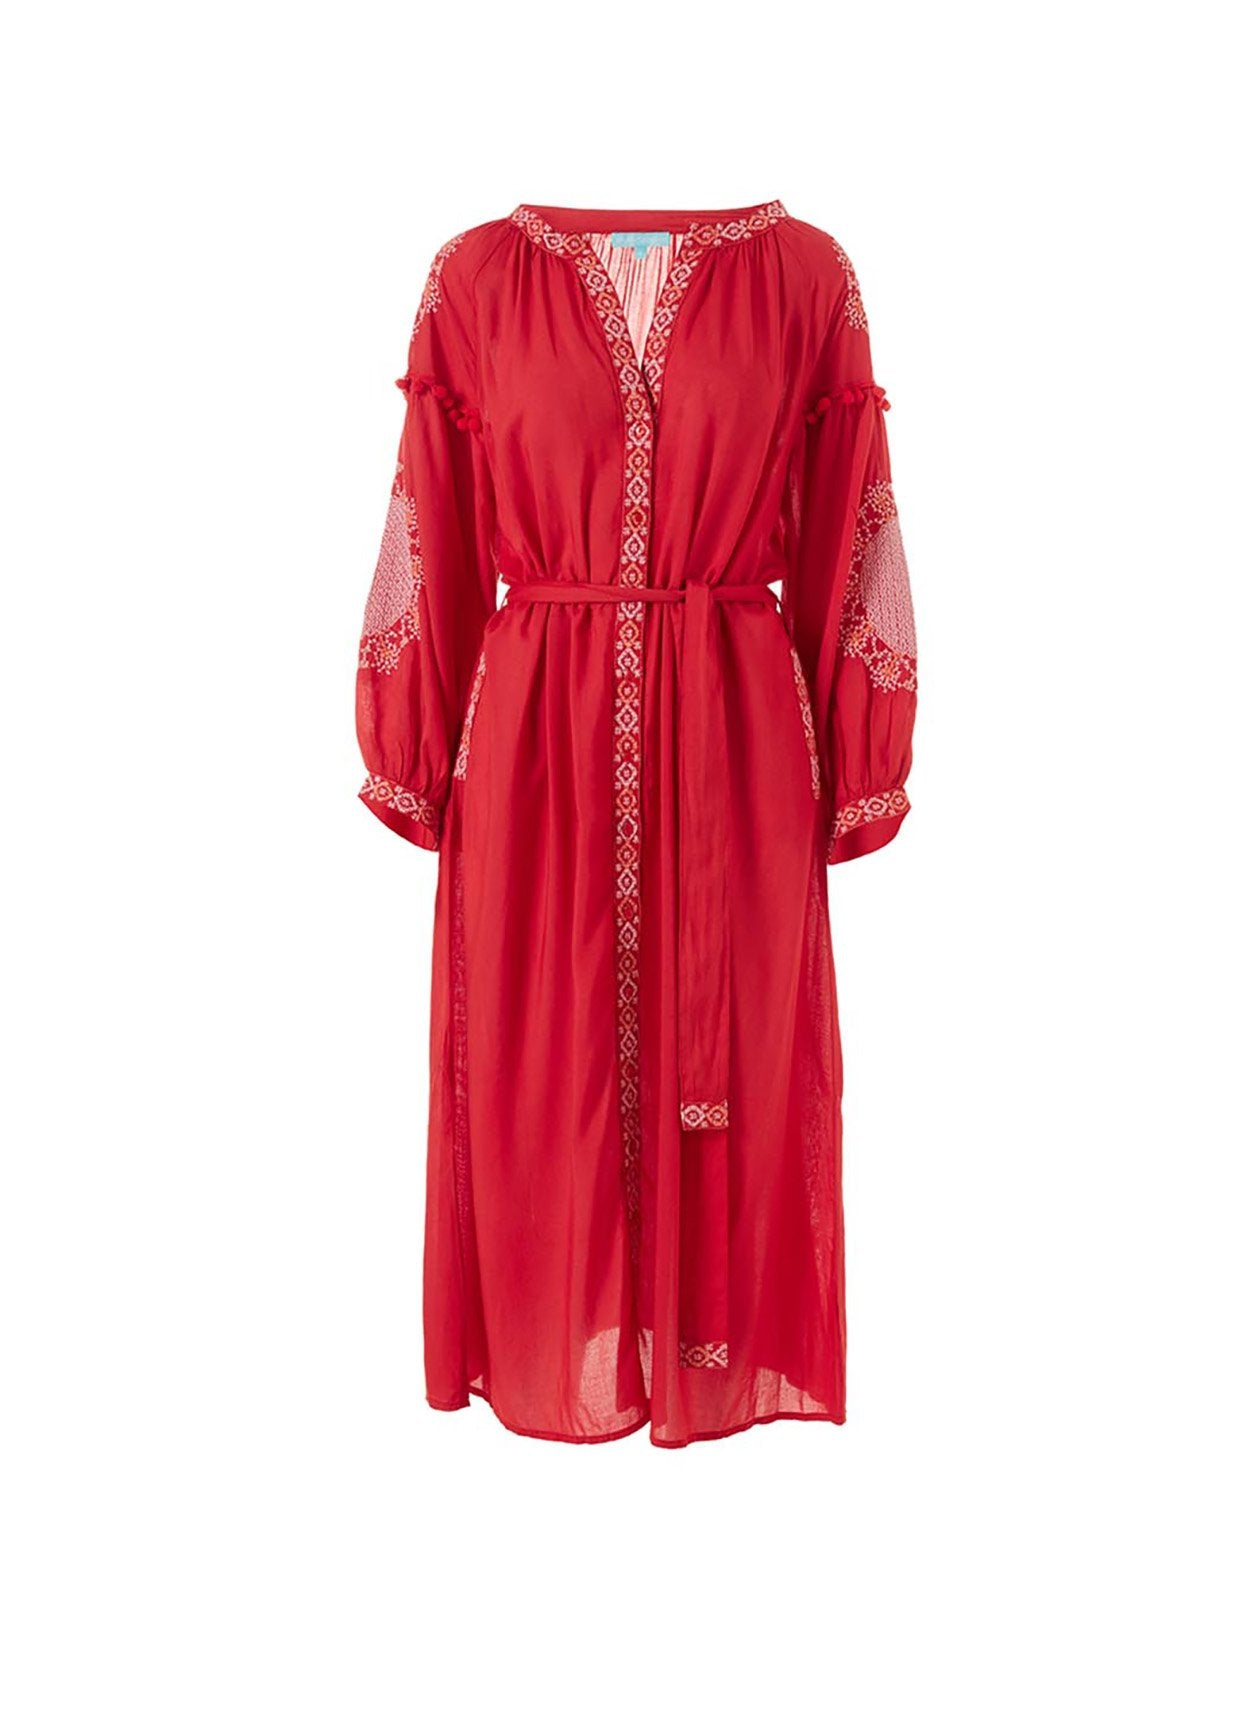 Iyla Red/White Long Kaftan